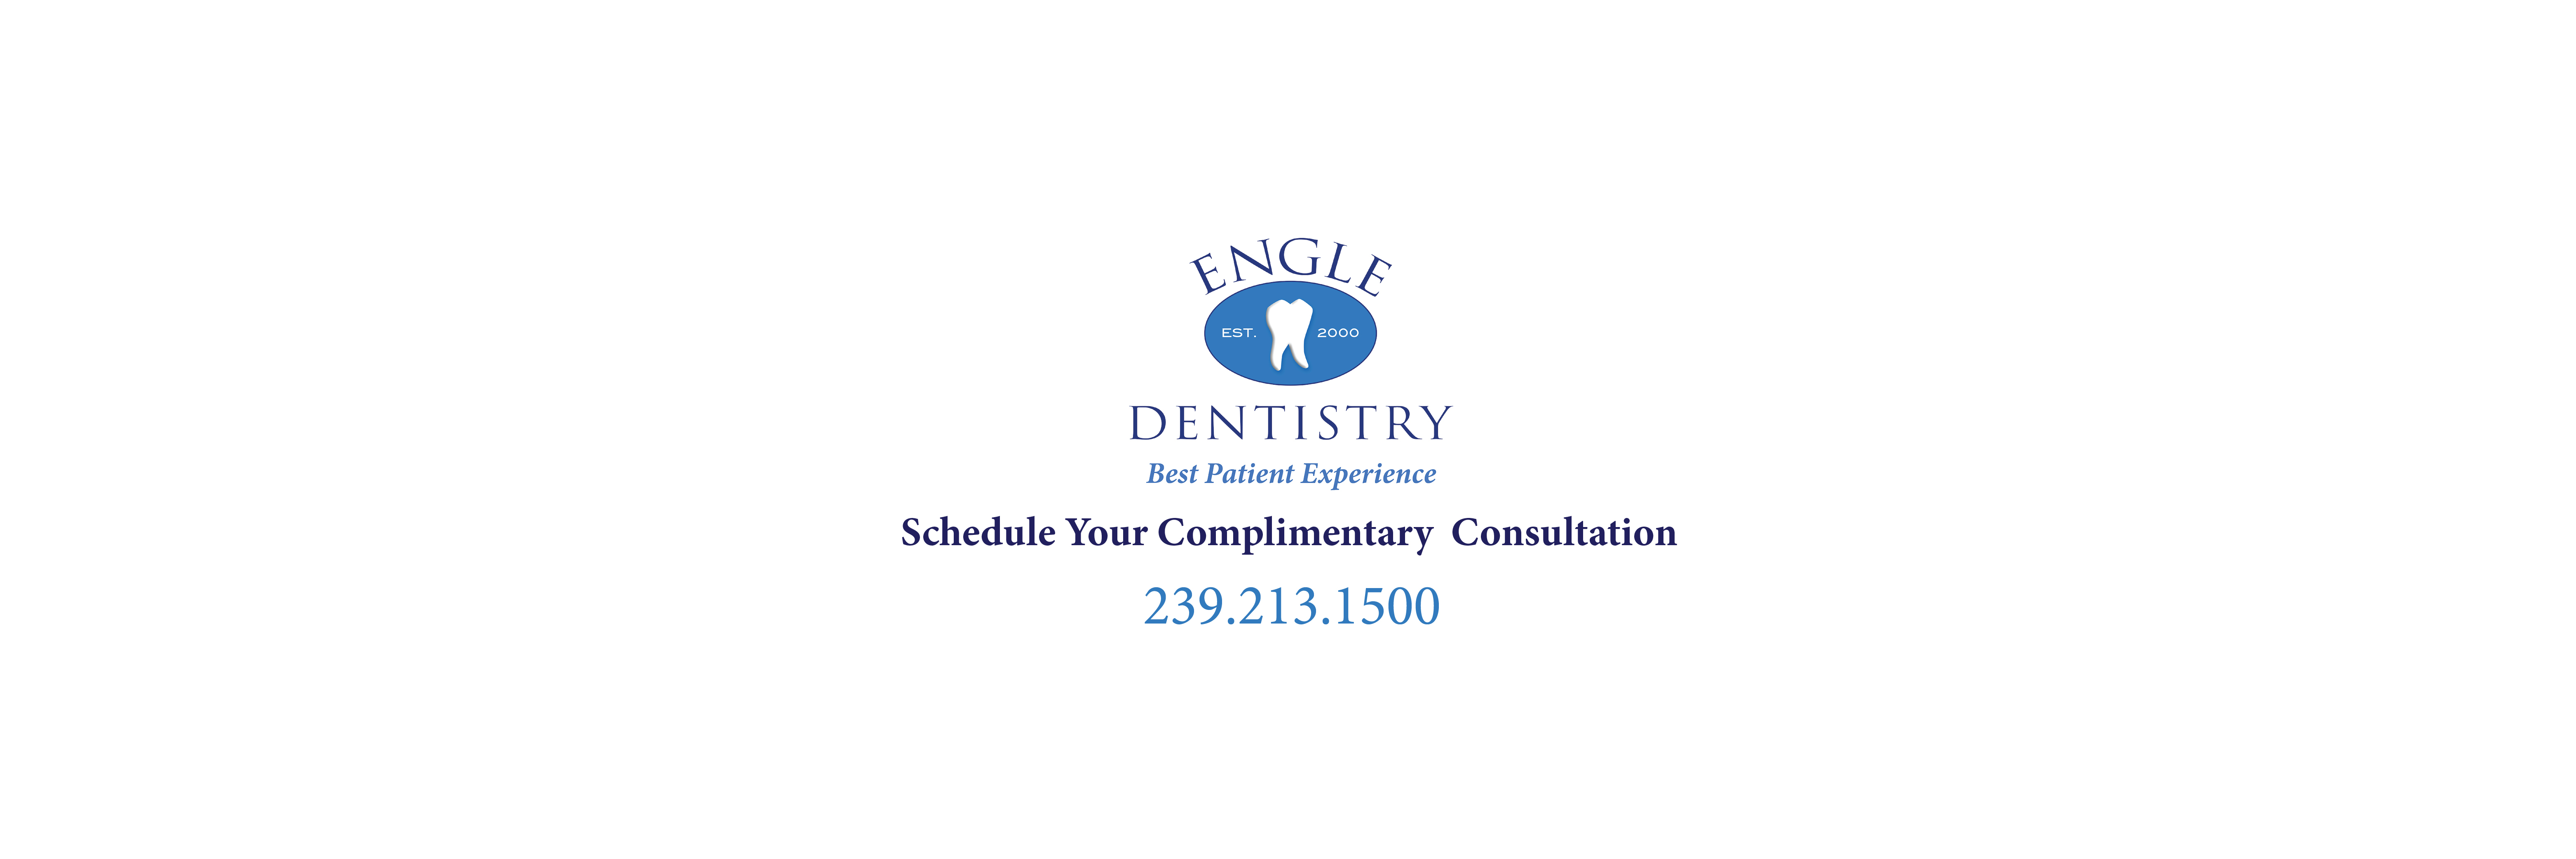 Engle Dentistry - Downtown Naples reviews | Cosmetic Dentists at 1390 9th Street North - Naples FL